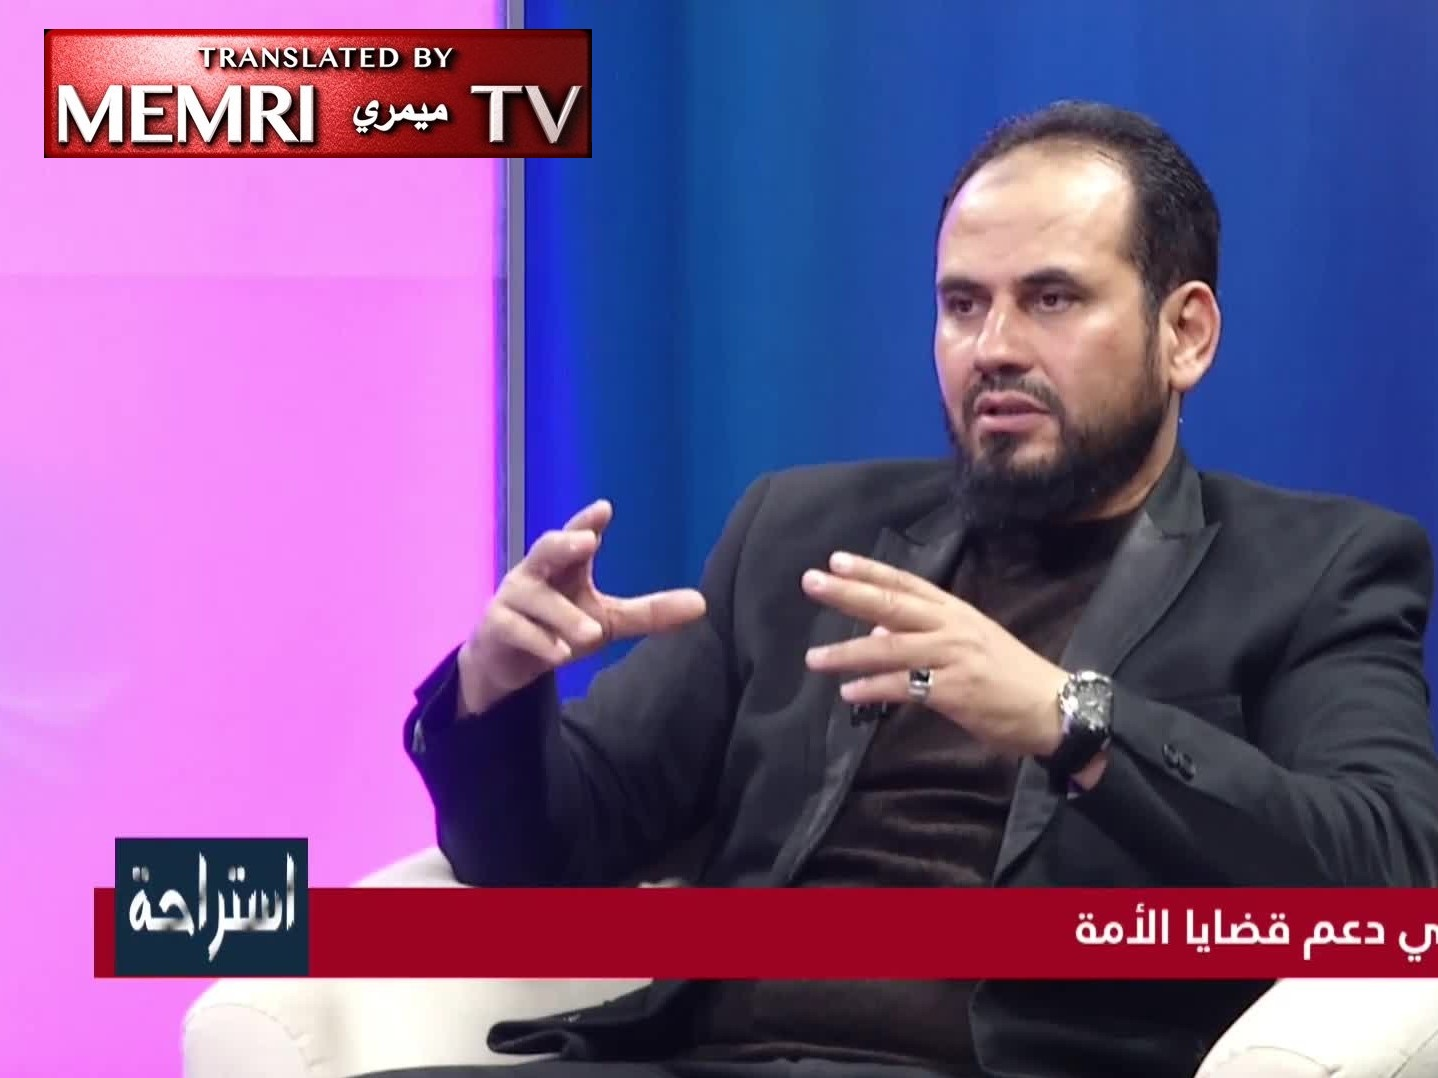 Libyan Researcher Dr. Ali Al-Siba'i: Westerners Secretly Aim to Corrupt Muslim Women by Making Them Believe In Equality